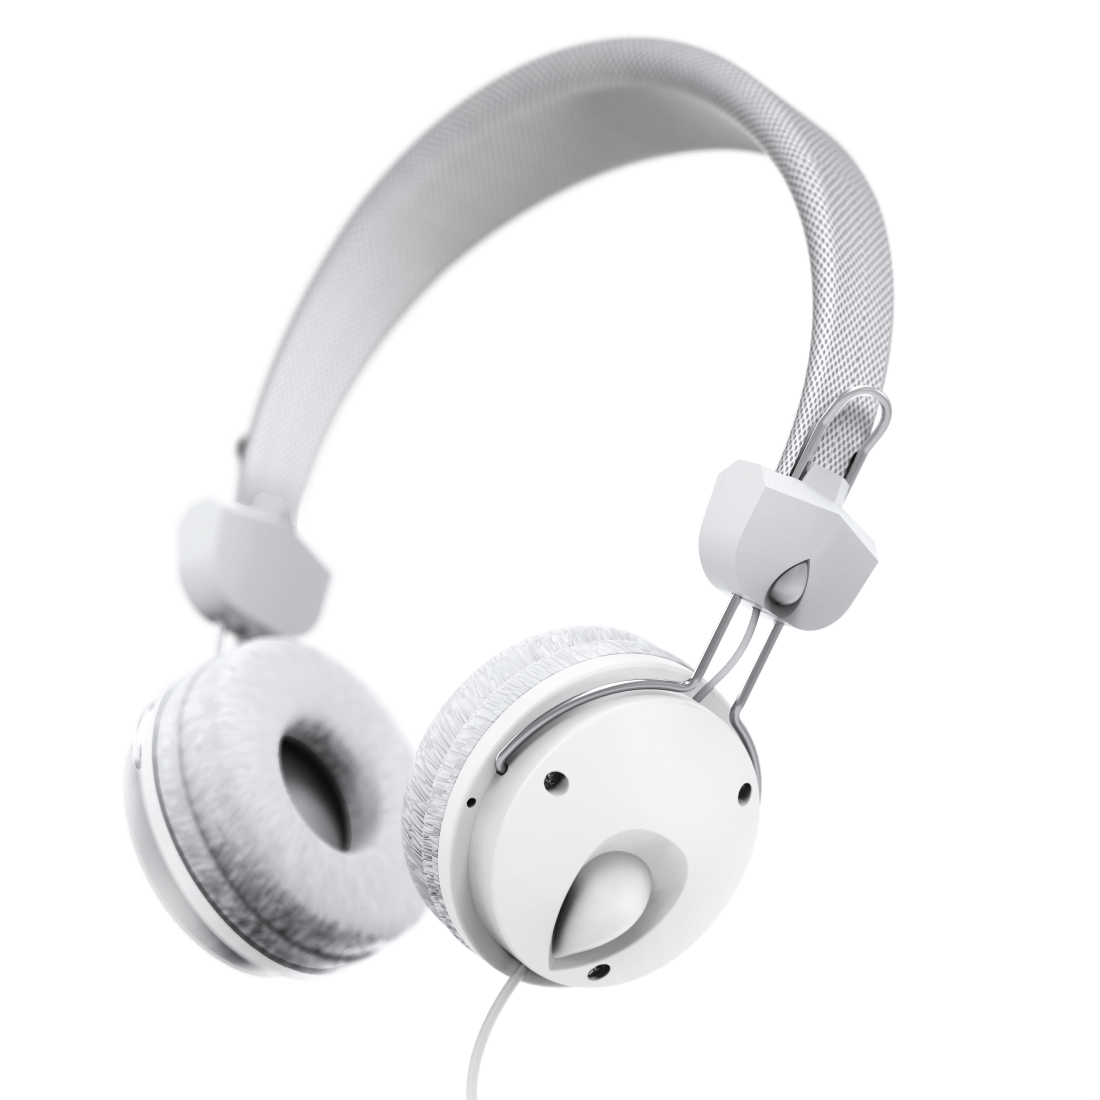 "abx4 High-Res Image4 - Hama, Casque stéréo supra-aural ""Fun4Music"", blanc"